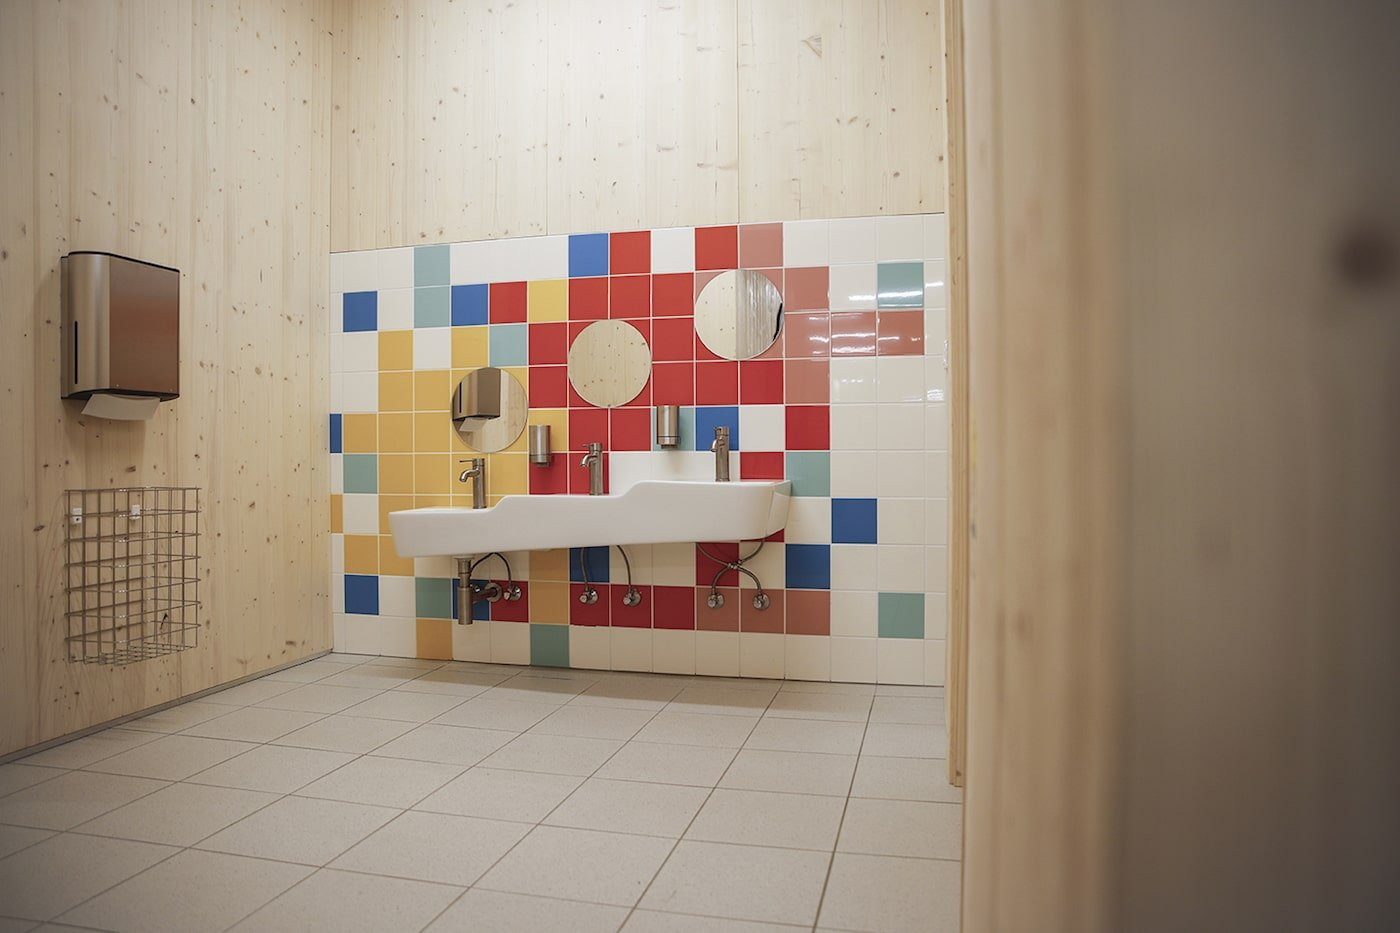 Colourful wall tiles in kids bathroom at Moar Gut childcare centre